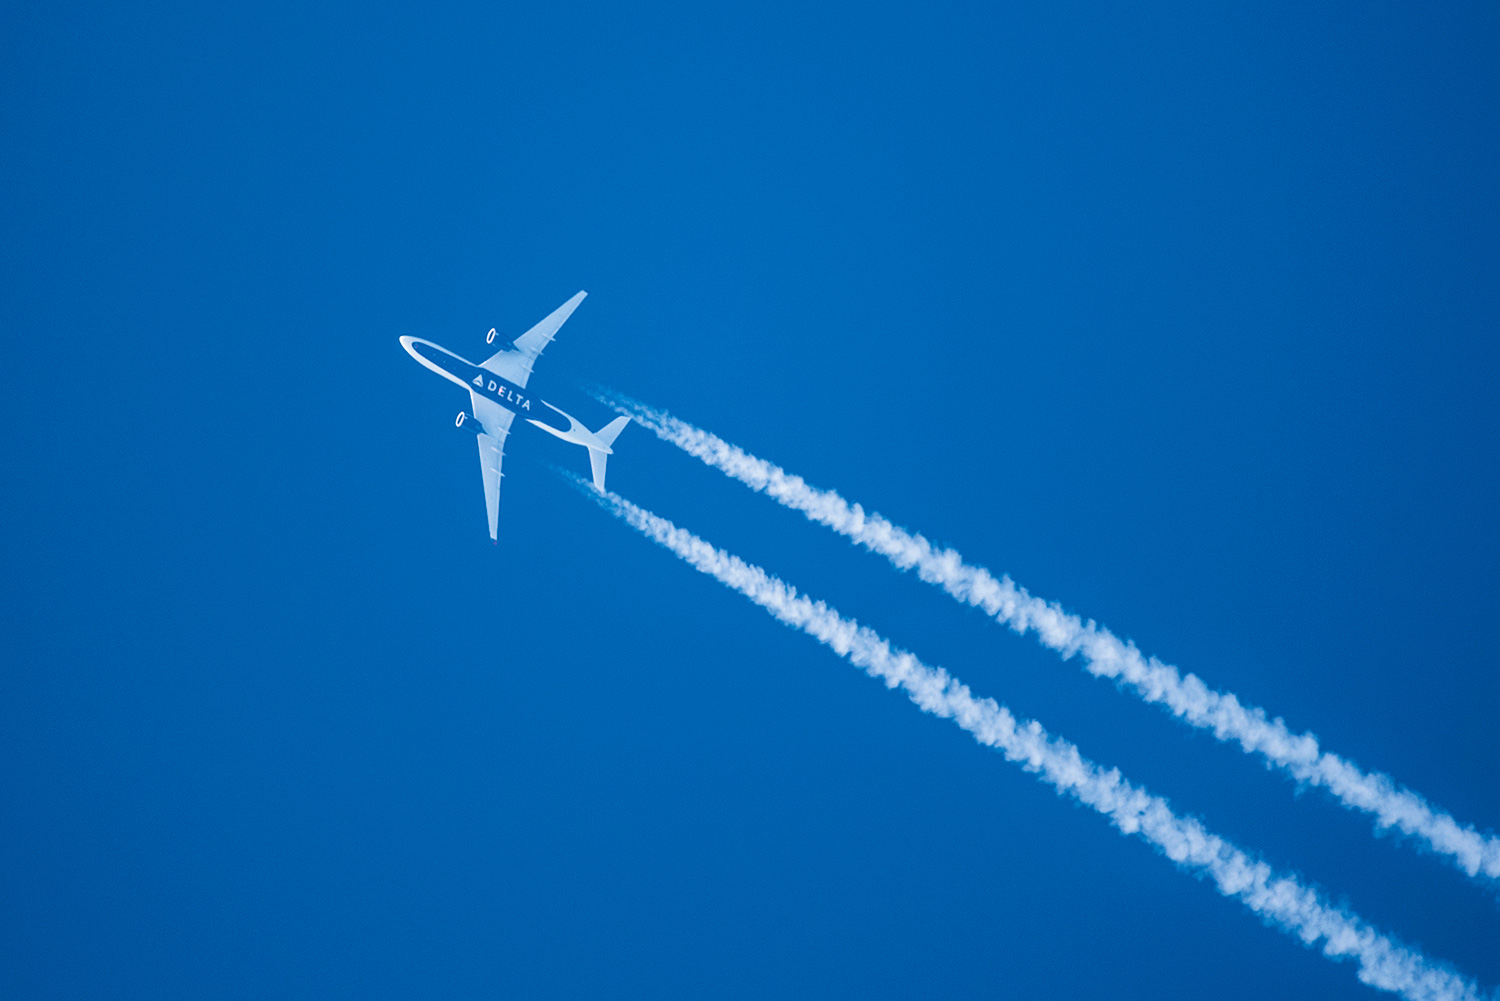 Airbus A350 jet with contrails cruising at 34,000 feet en route Tokyo to Seattle